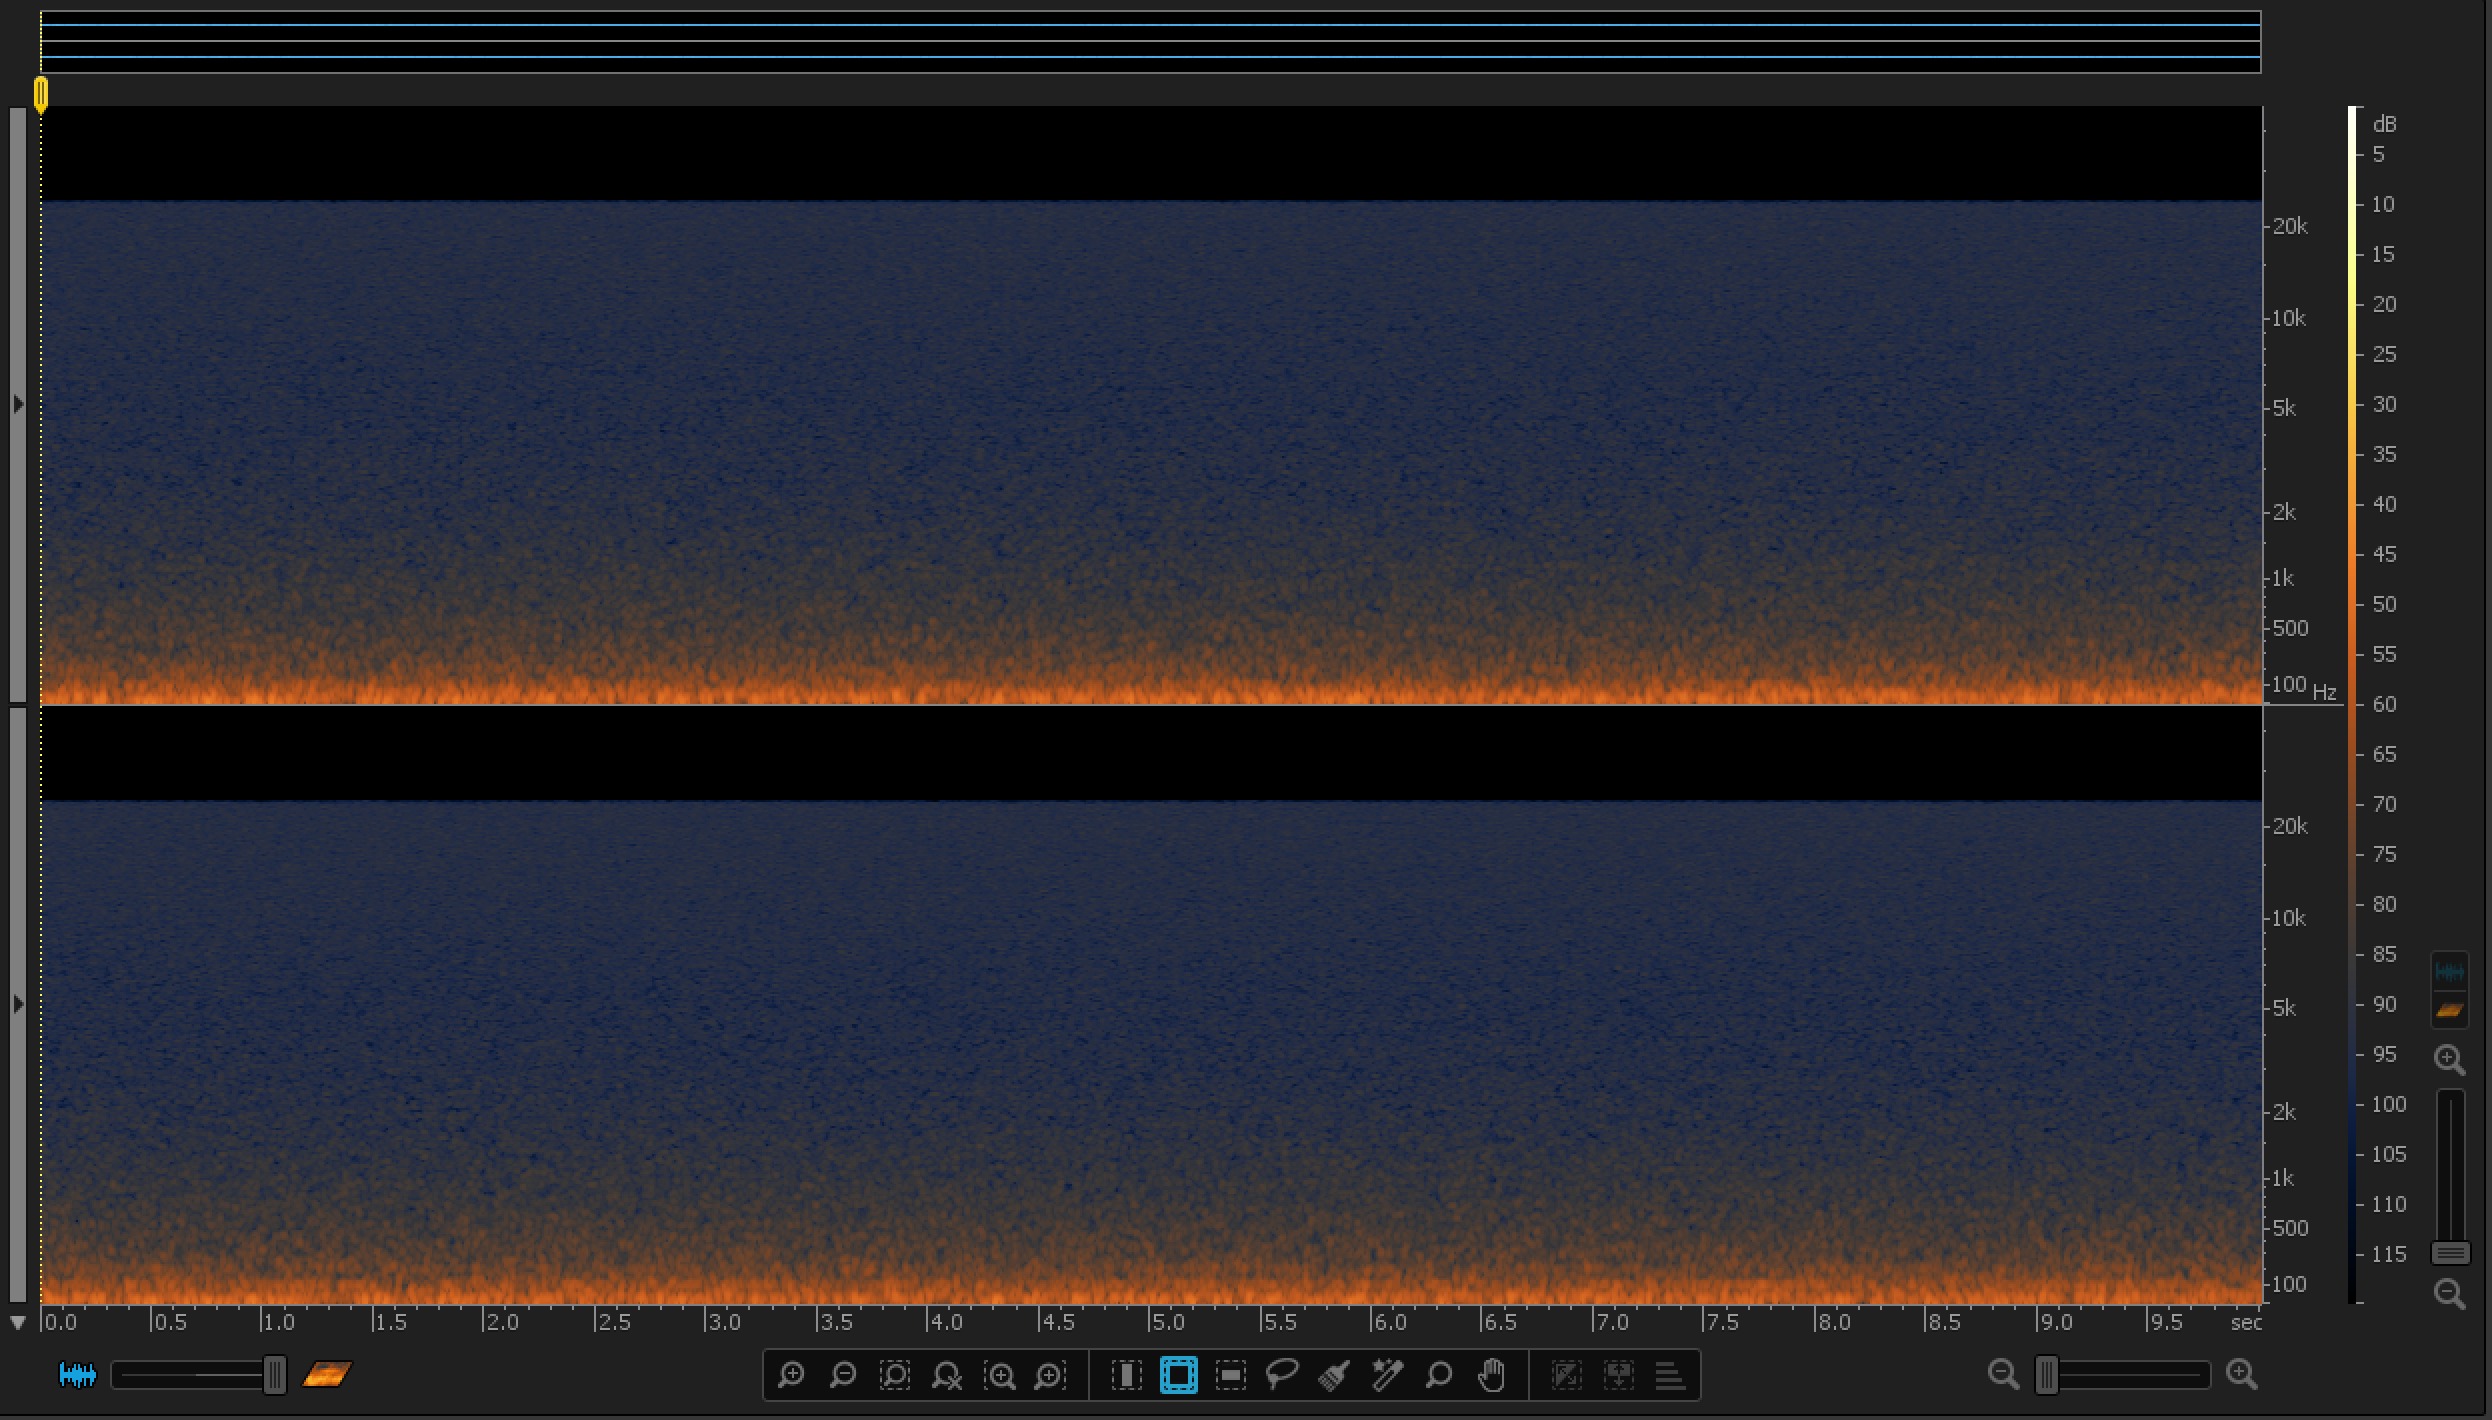 H6 Noise Spectrogram (Source: iZotope RX 4)